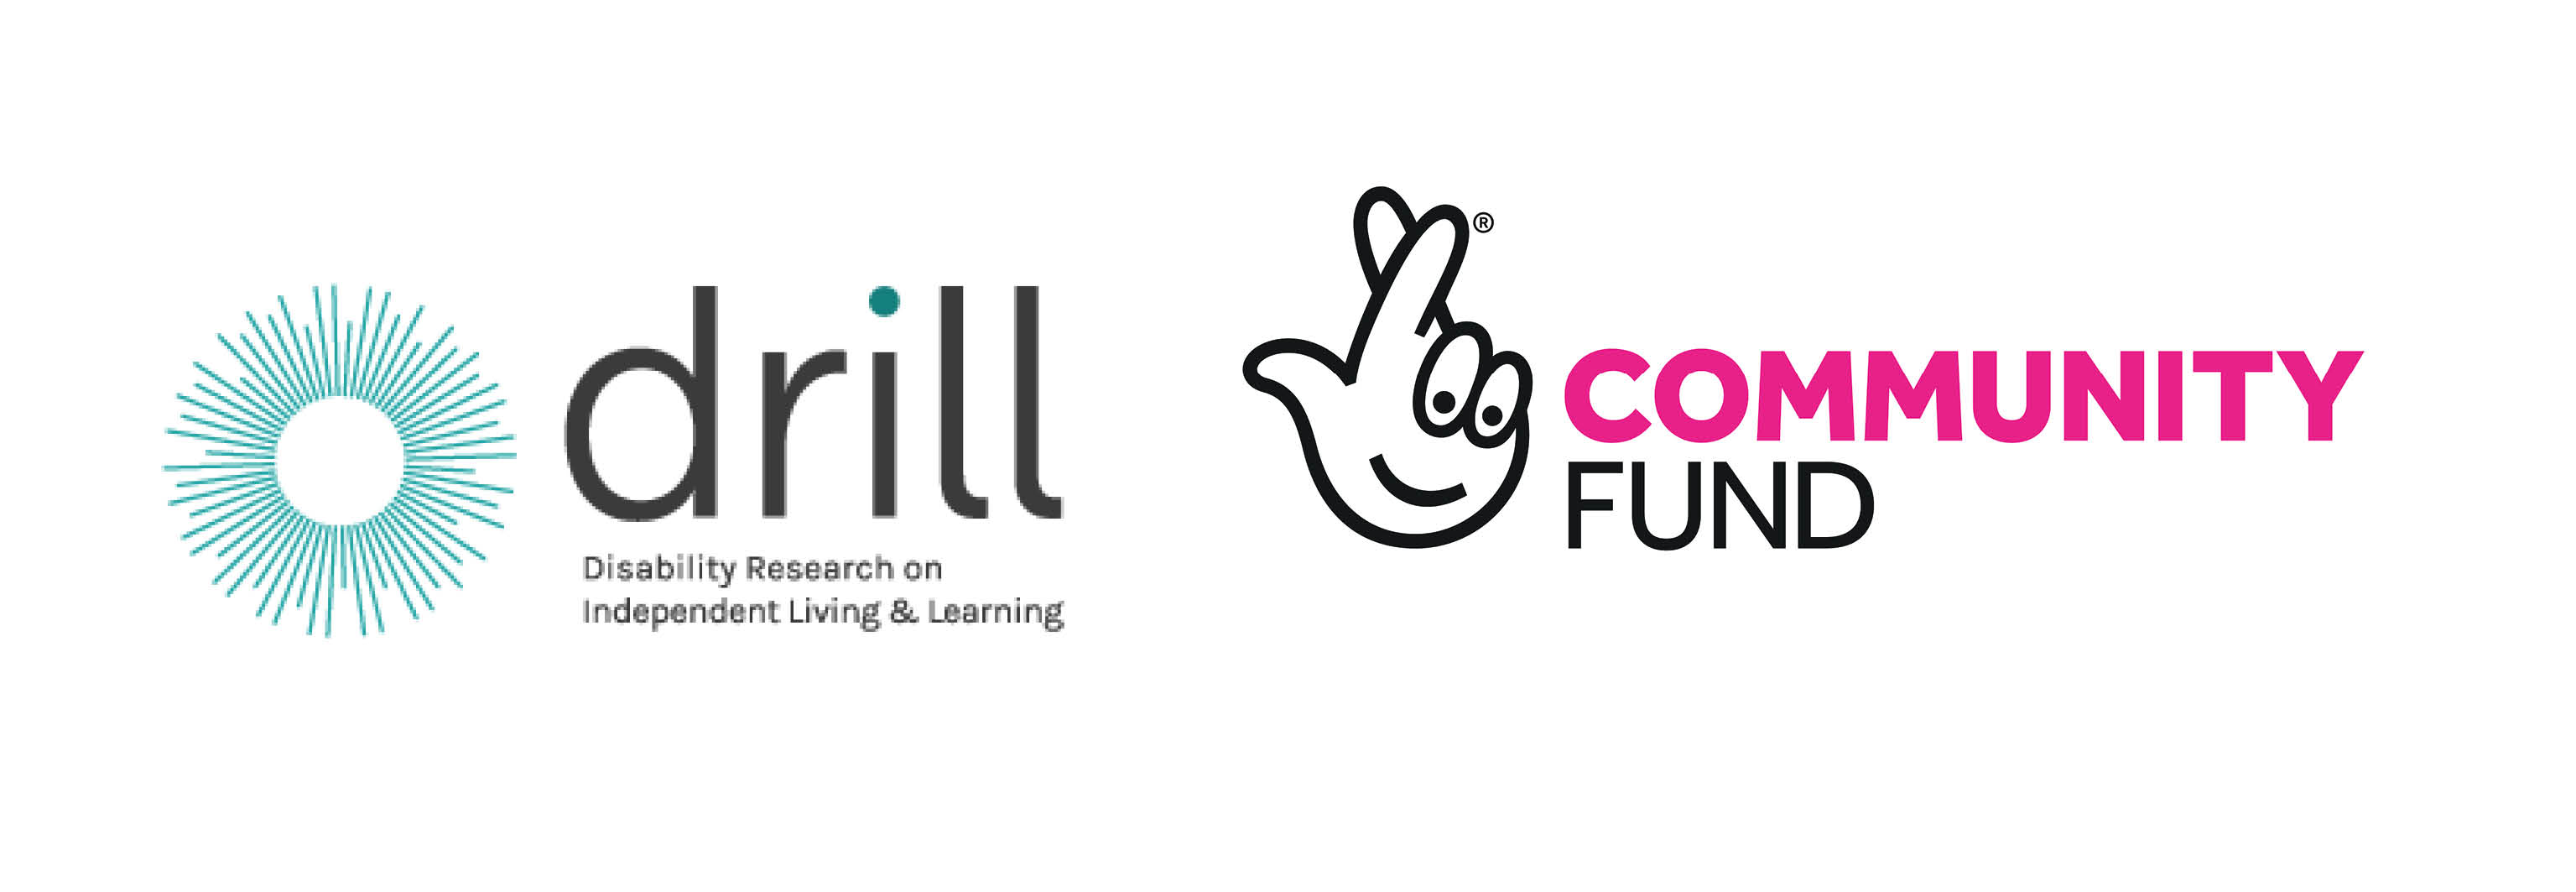 logos for the DRILL project and National Lottery community Fund